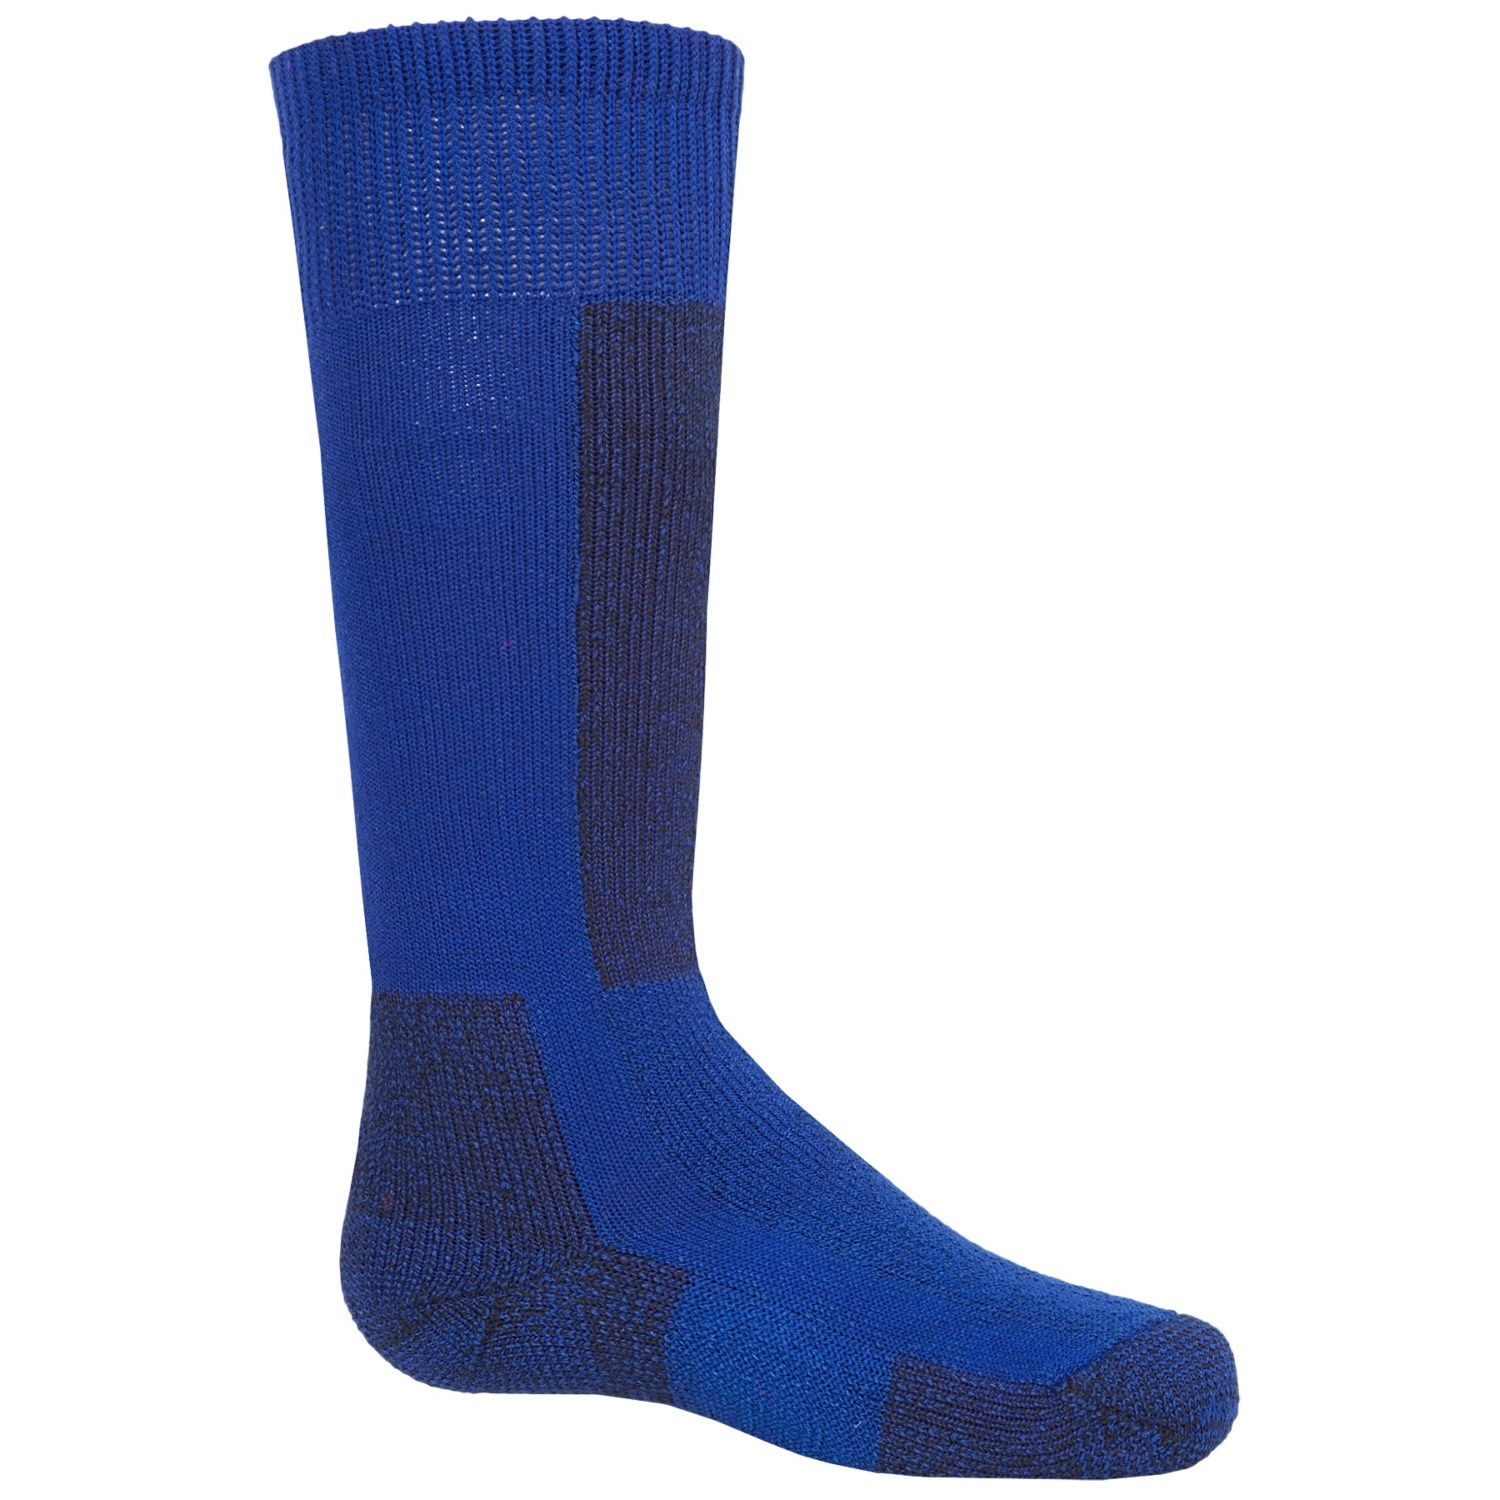 Thorlo socks discount coupons